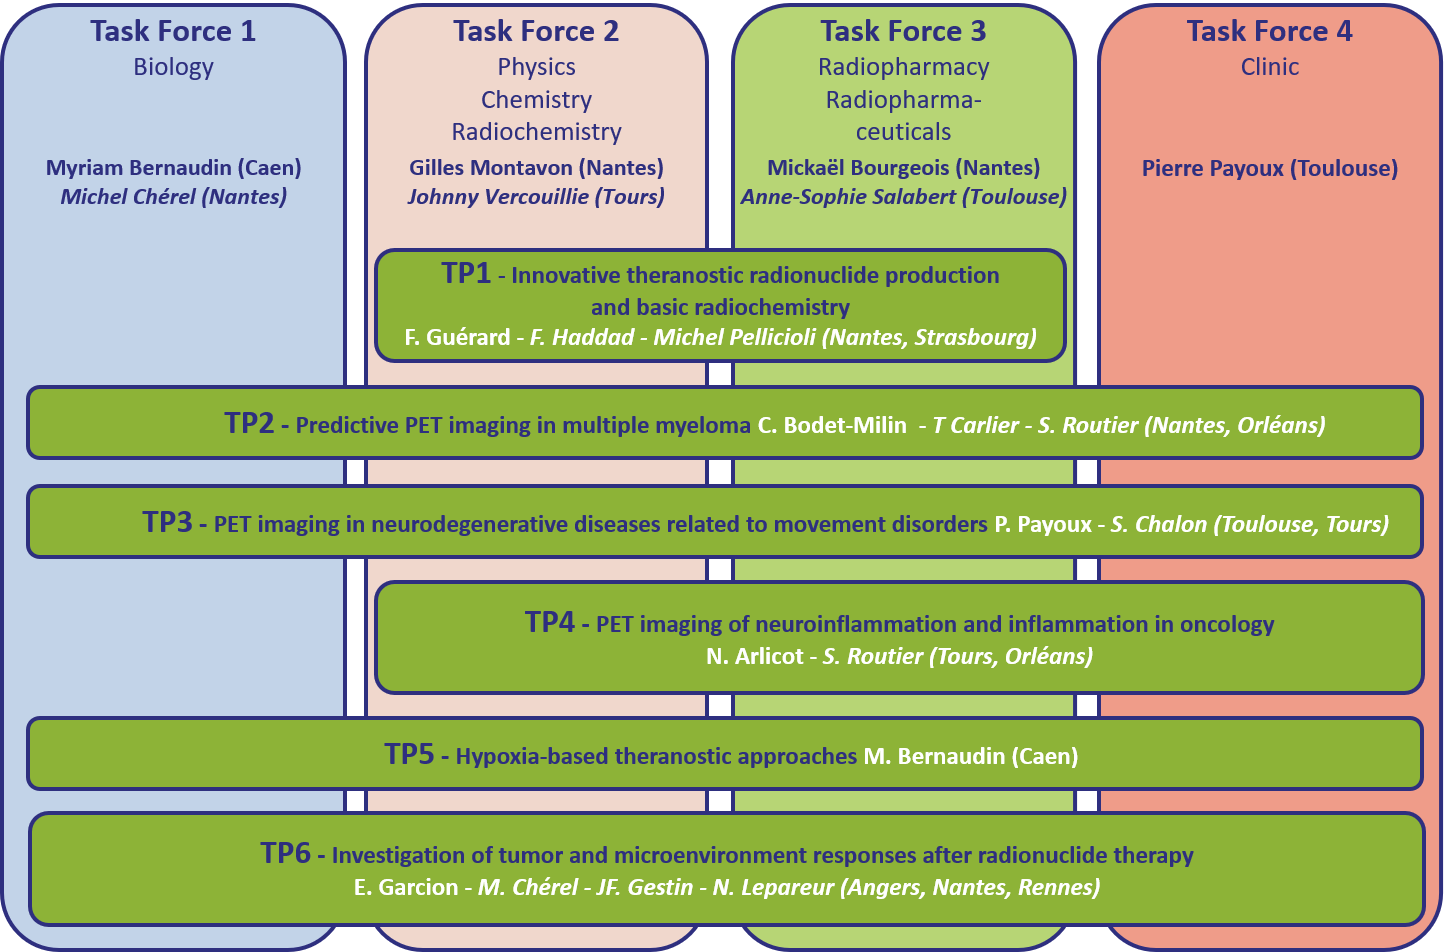 The 6 Translational Projects and the 4 Task Forces of the IRON 2 Labex scientific program